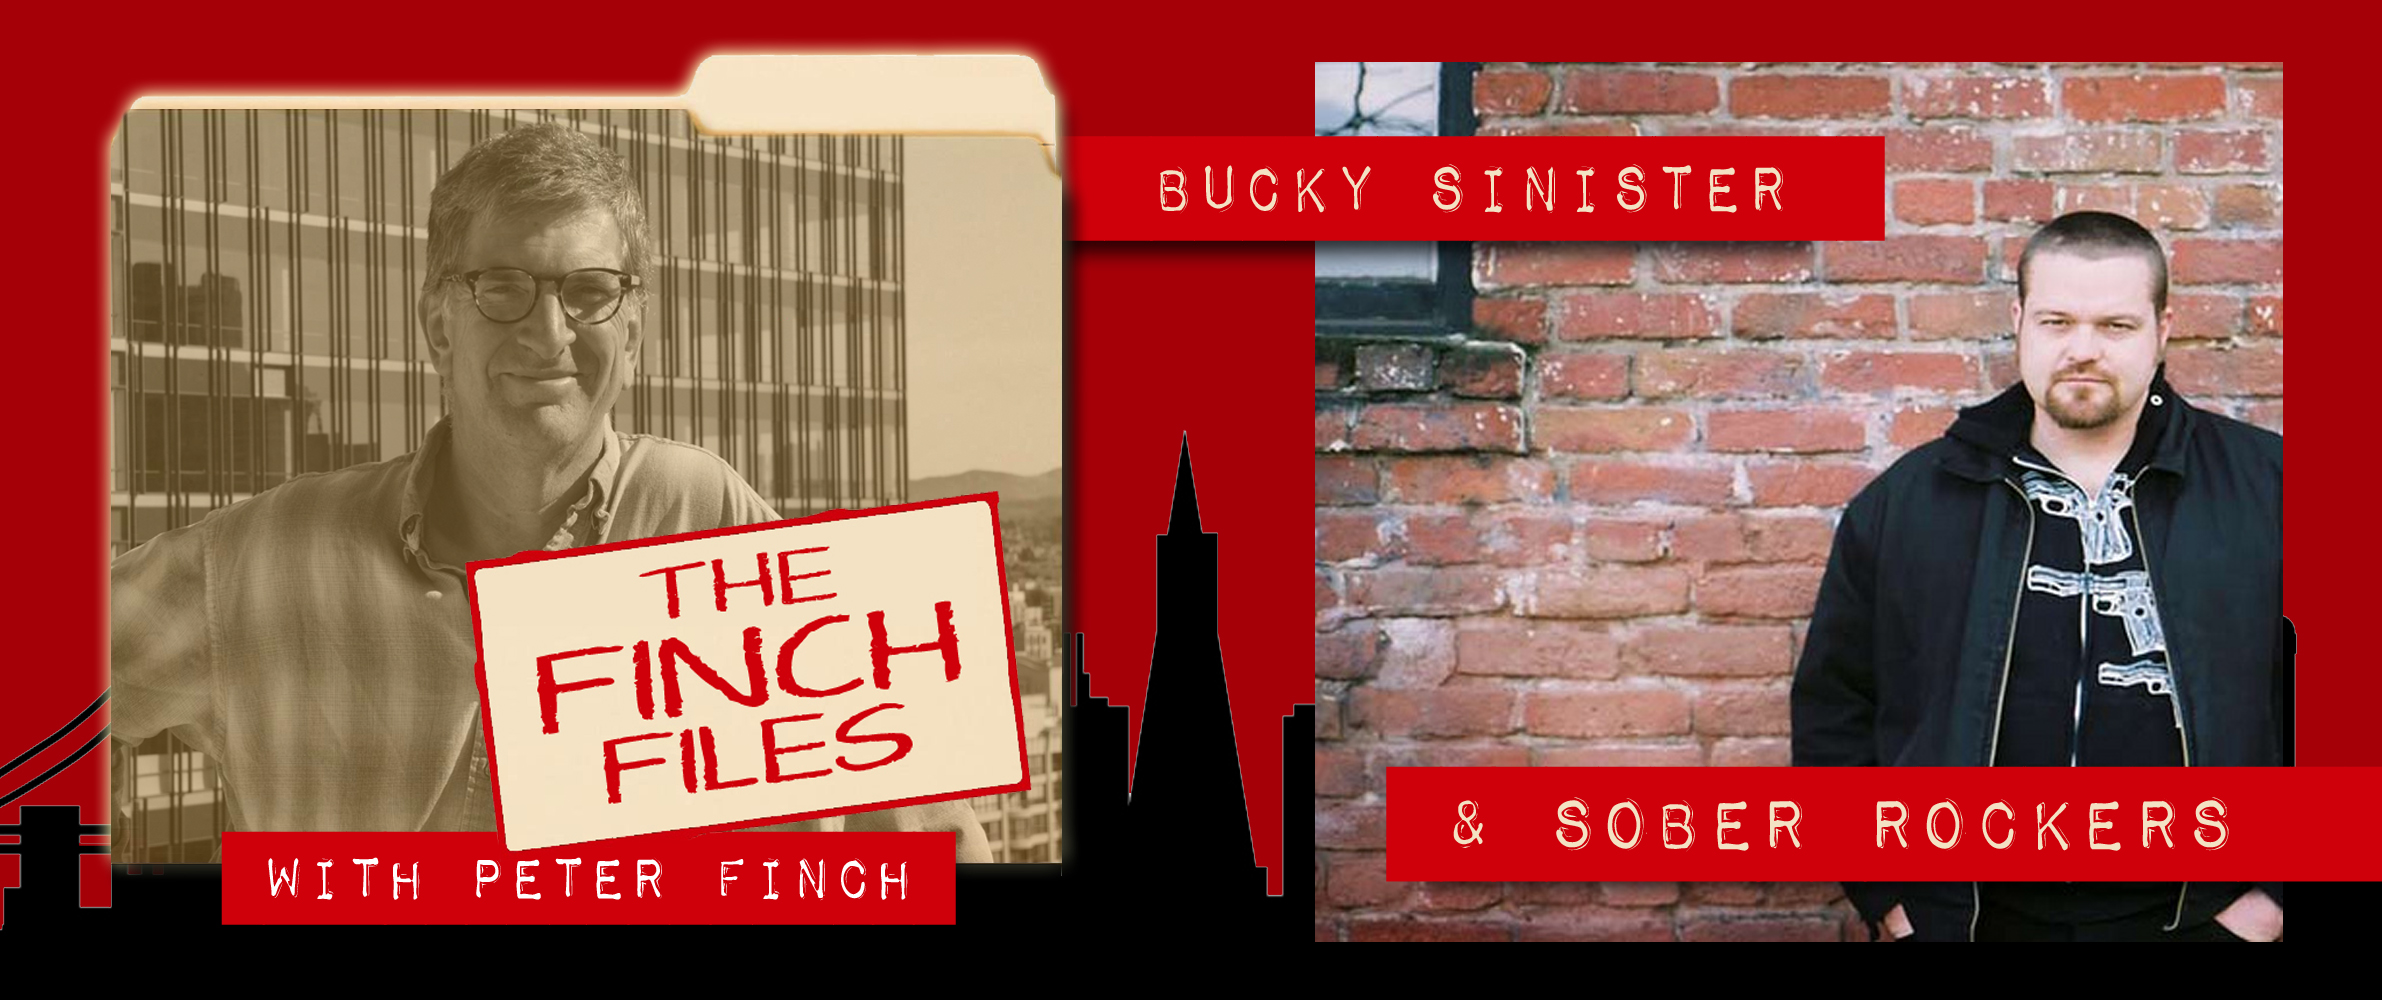 Finch Files: Bucky Sinister & Sober Rockers